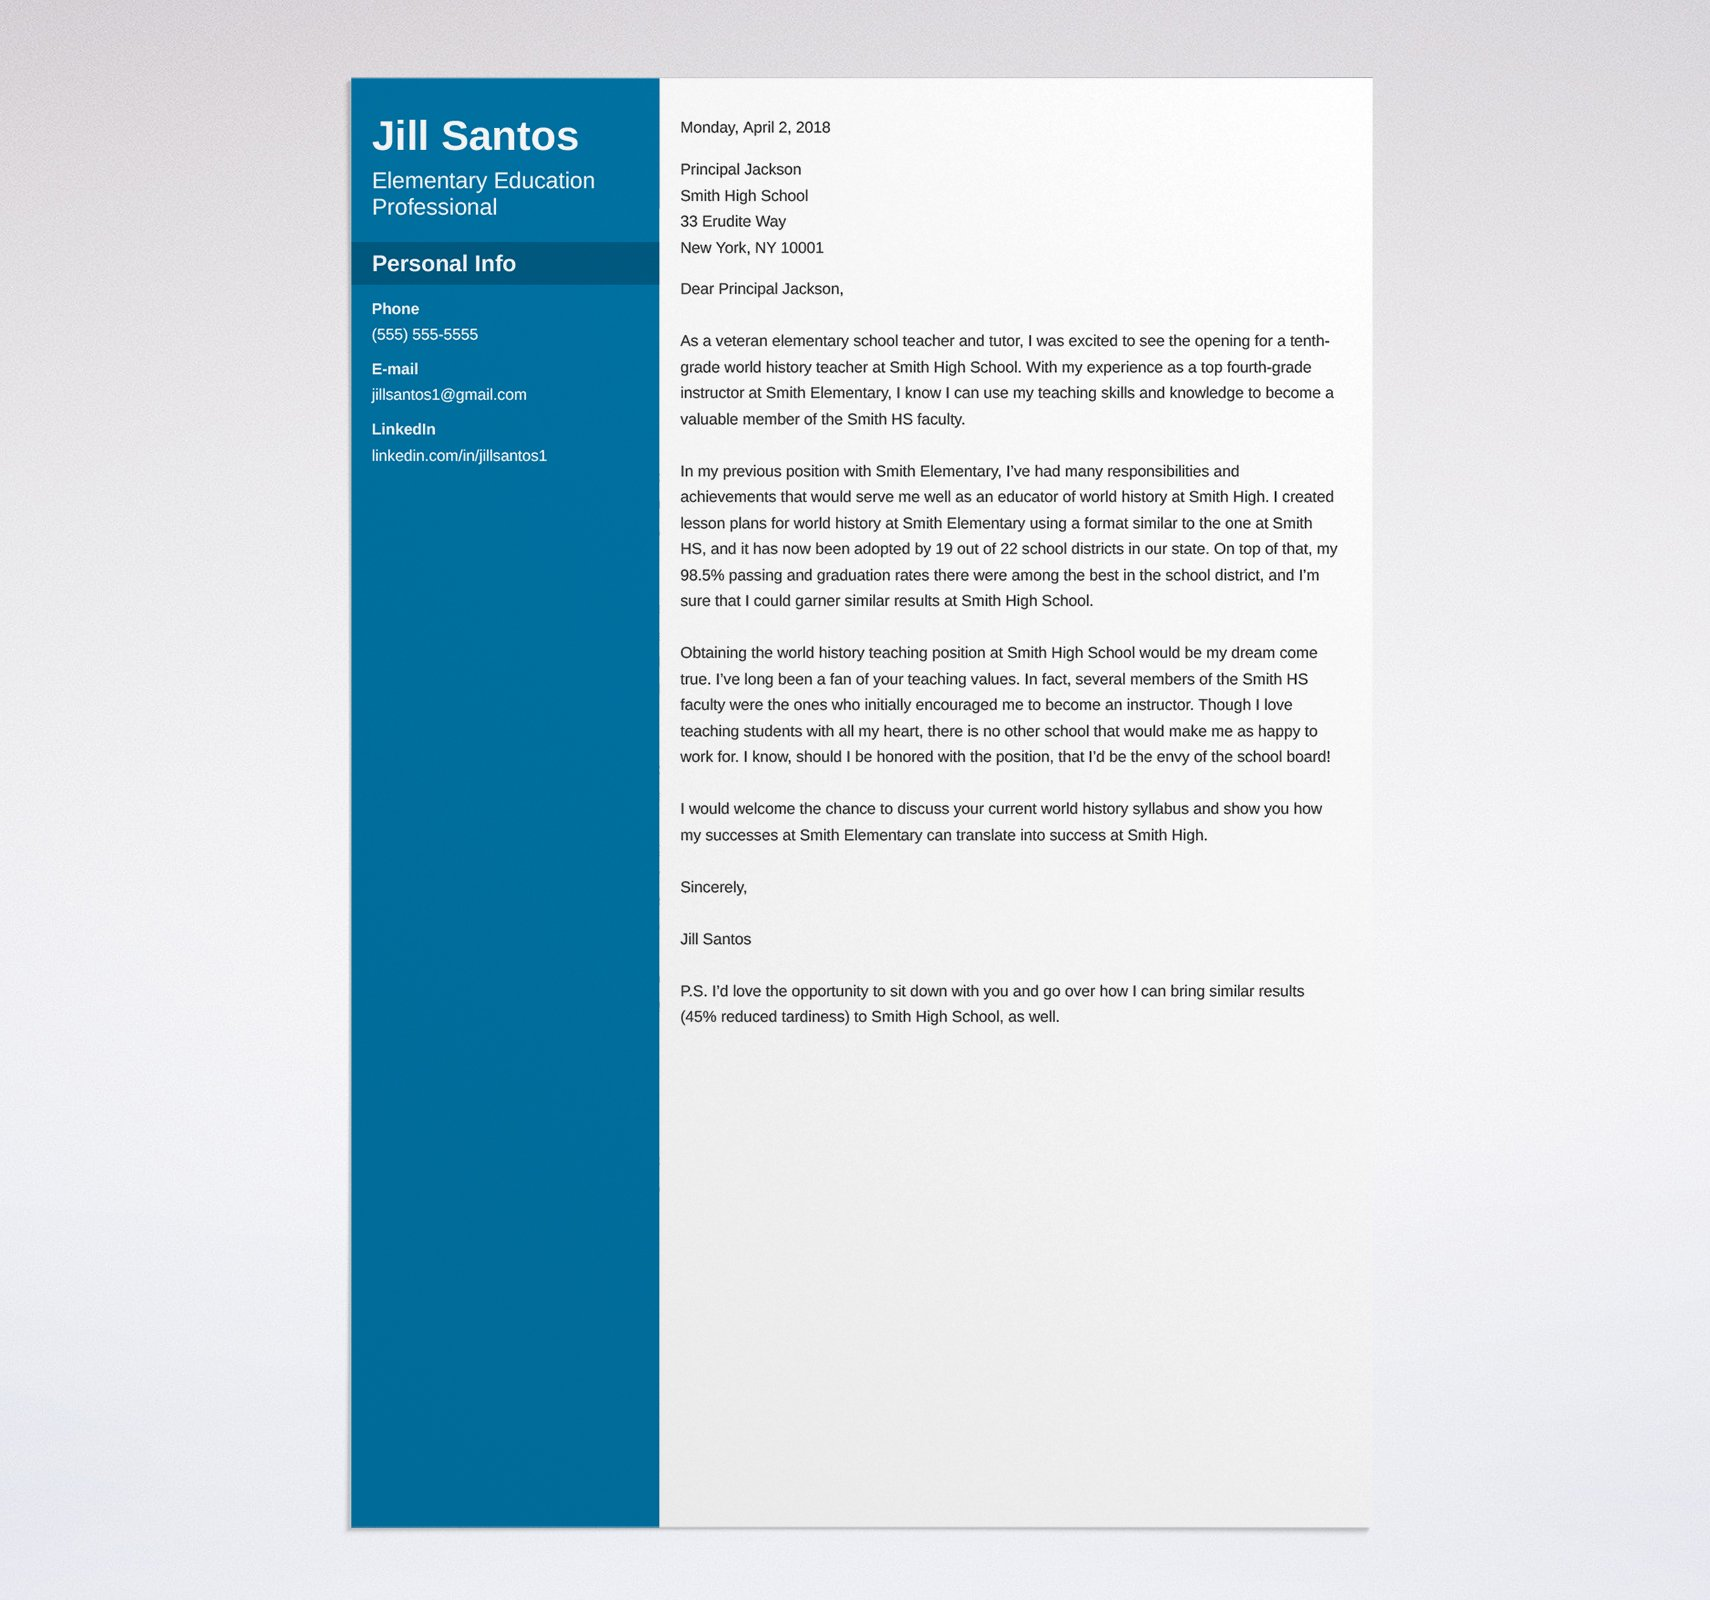 Resume With Cover Letter Examples Free Cover Letter Examples For Jobs 10 Best Samples Guides Tips